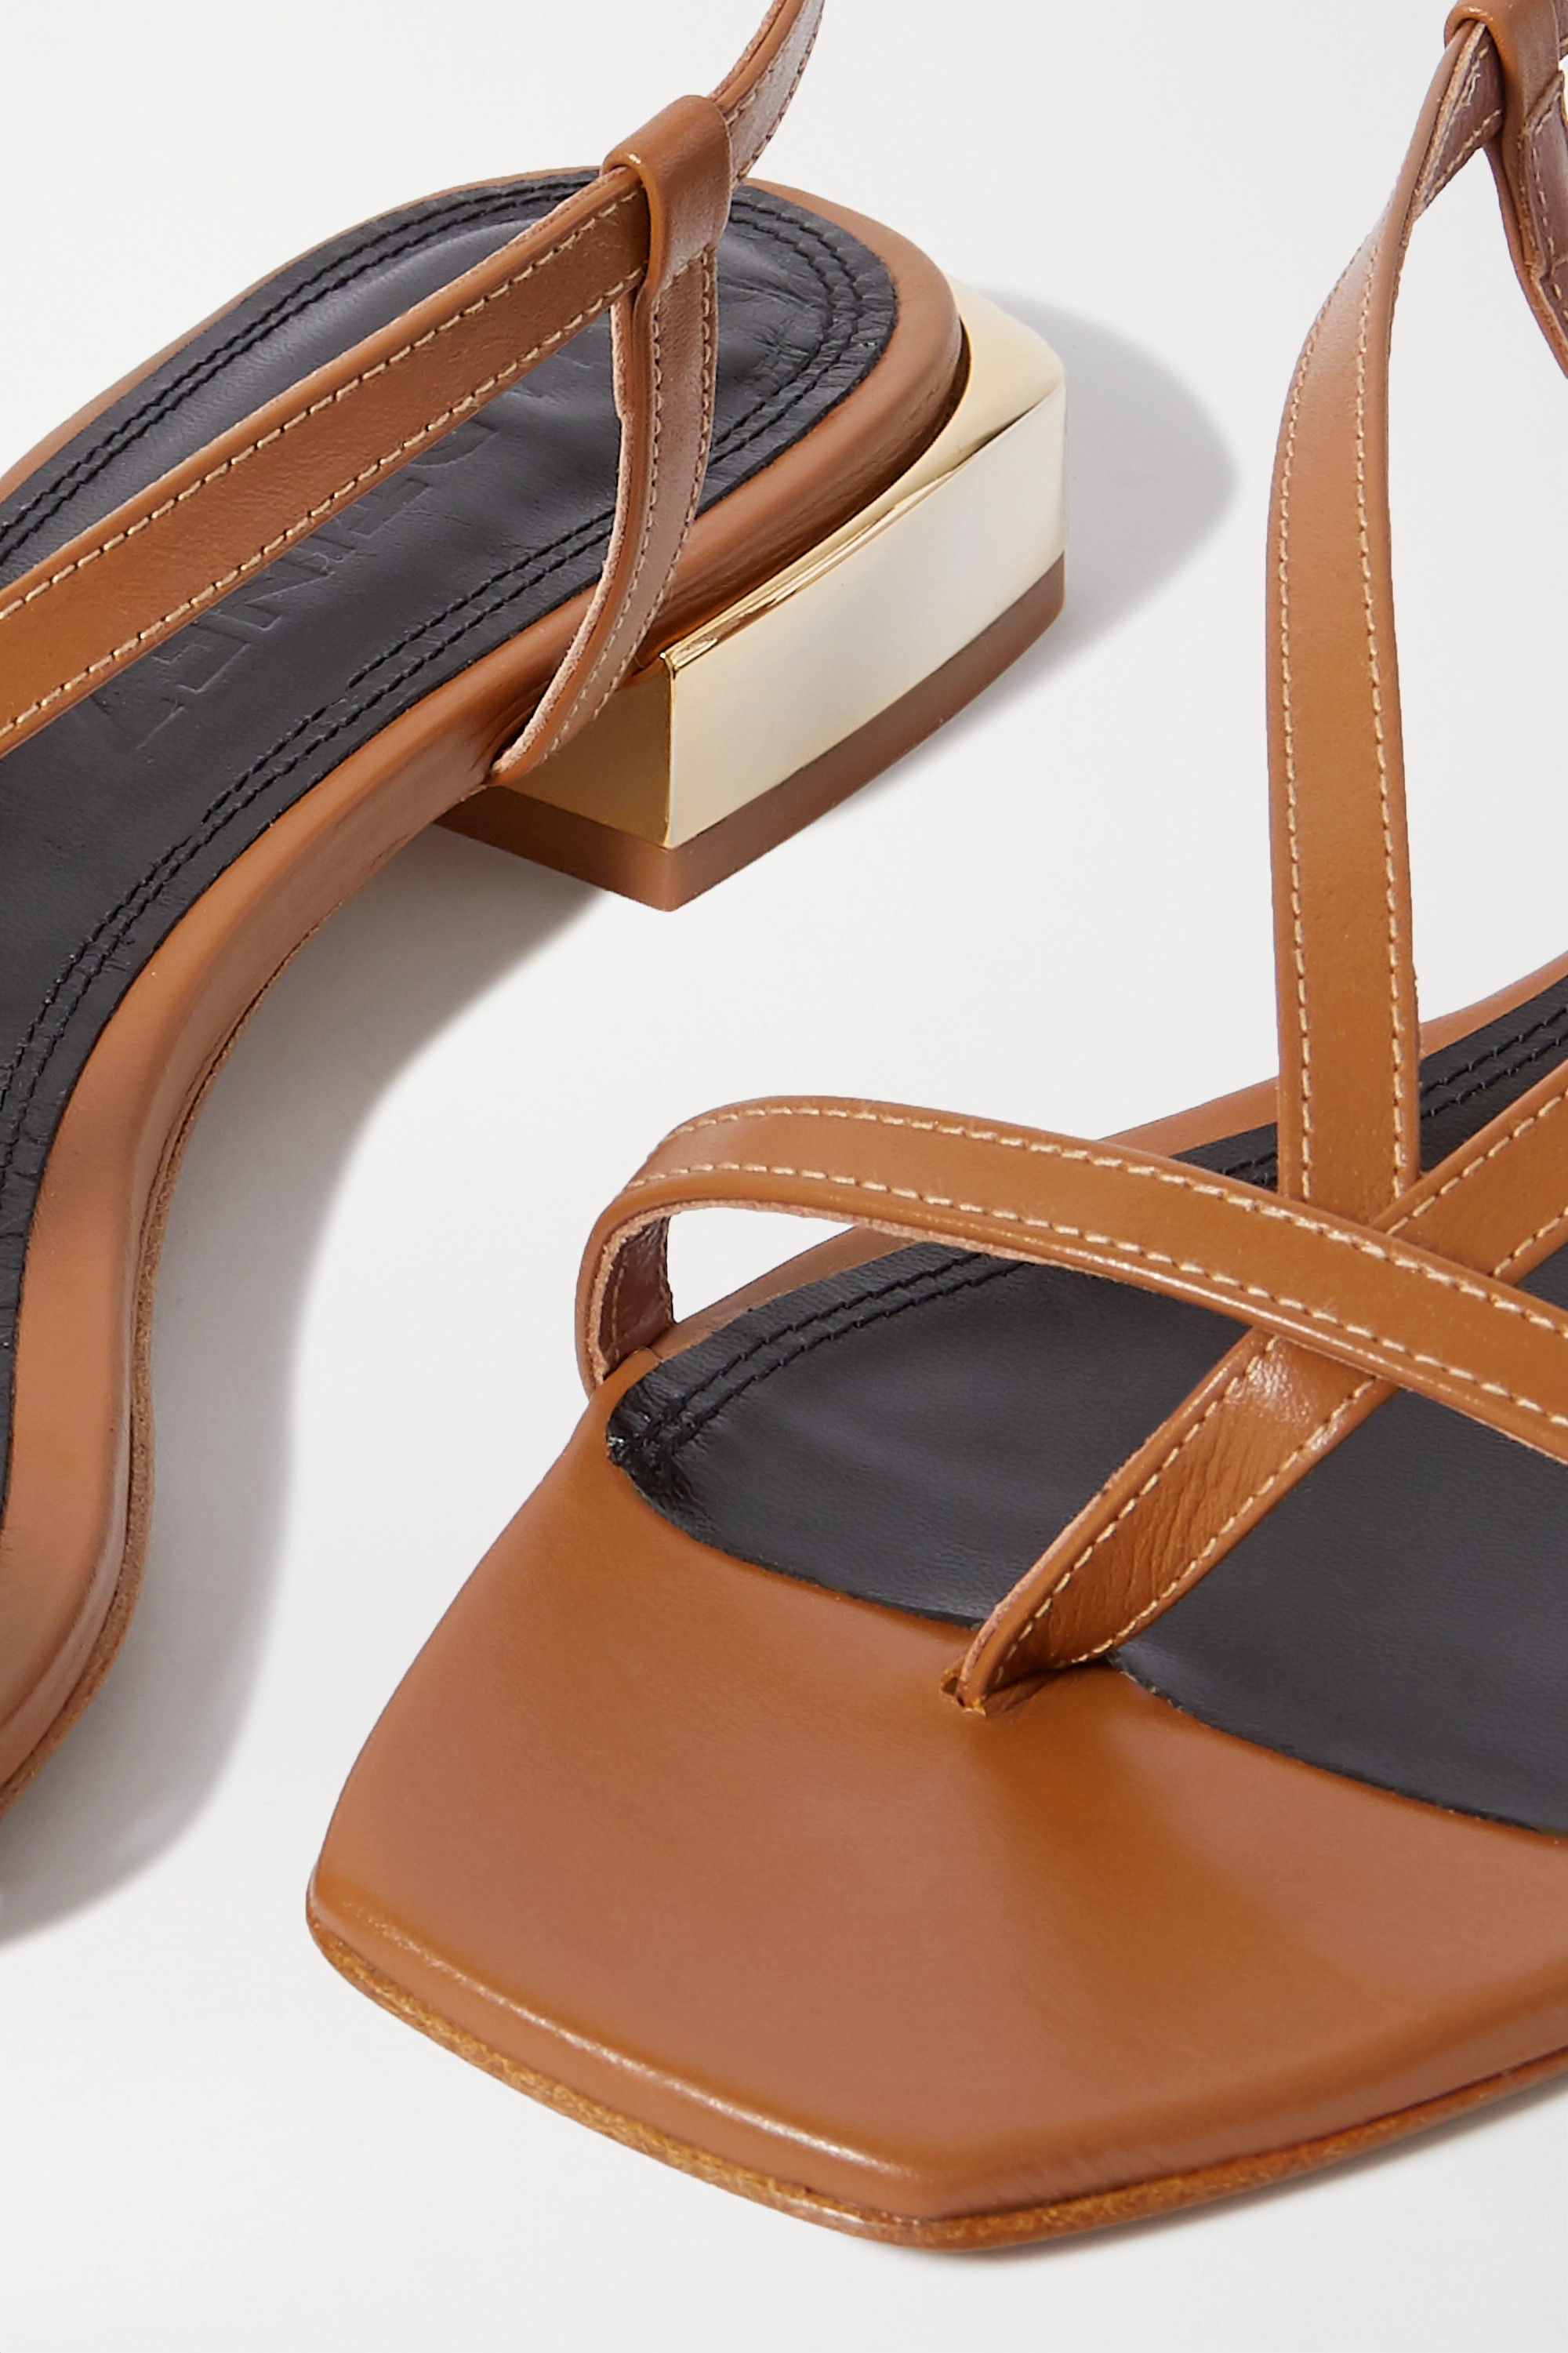 Souliers Martinez Paulina leather sandals